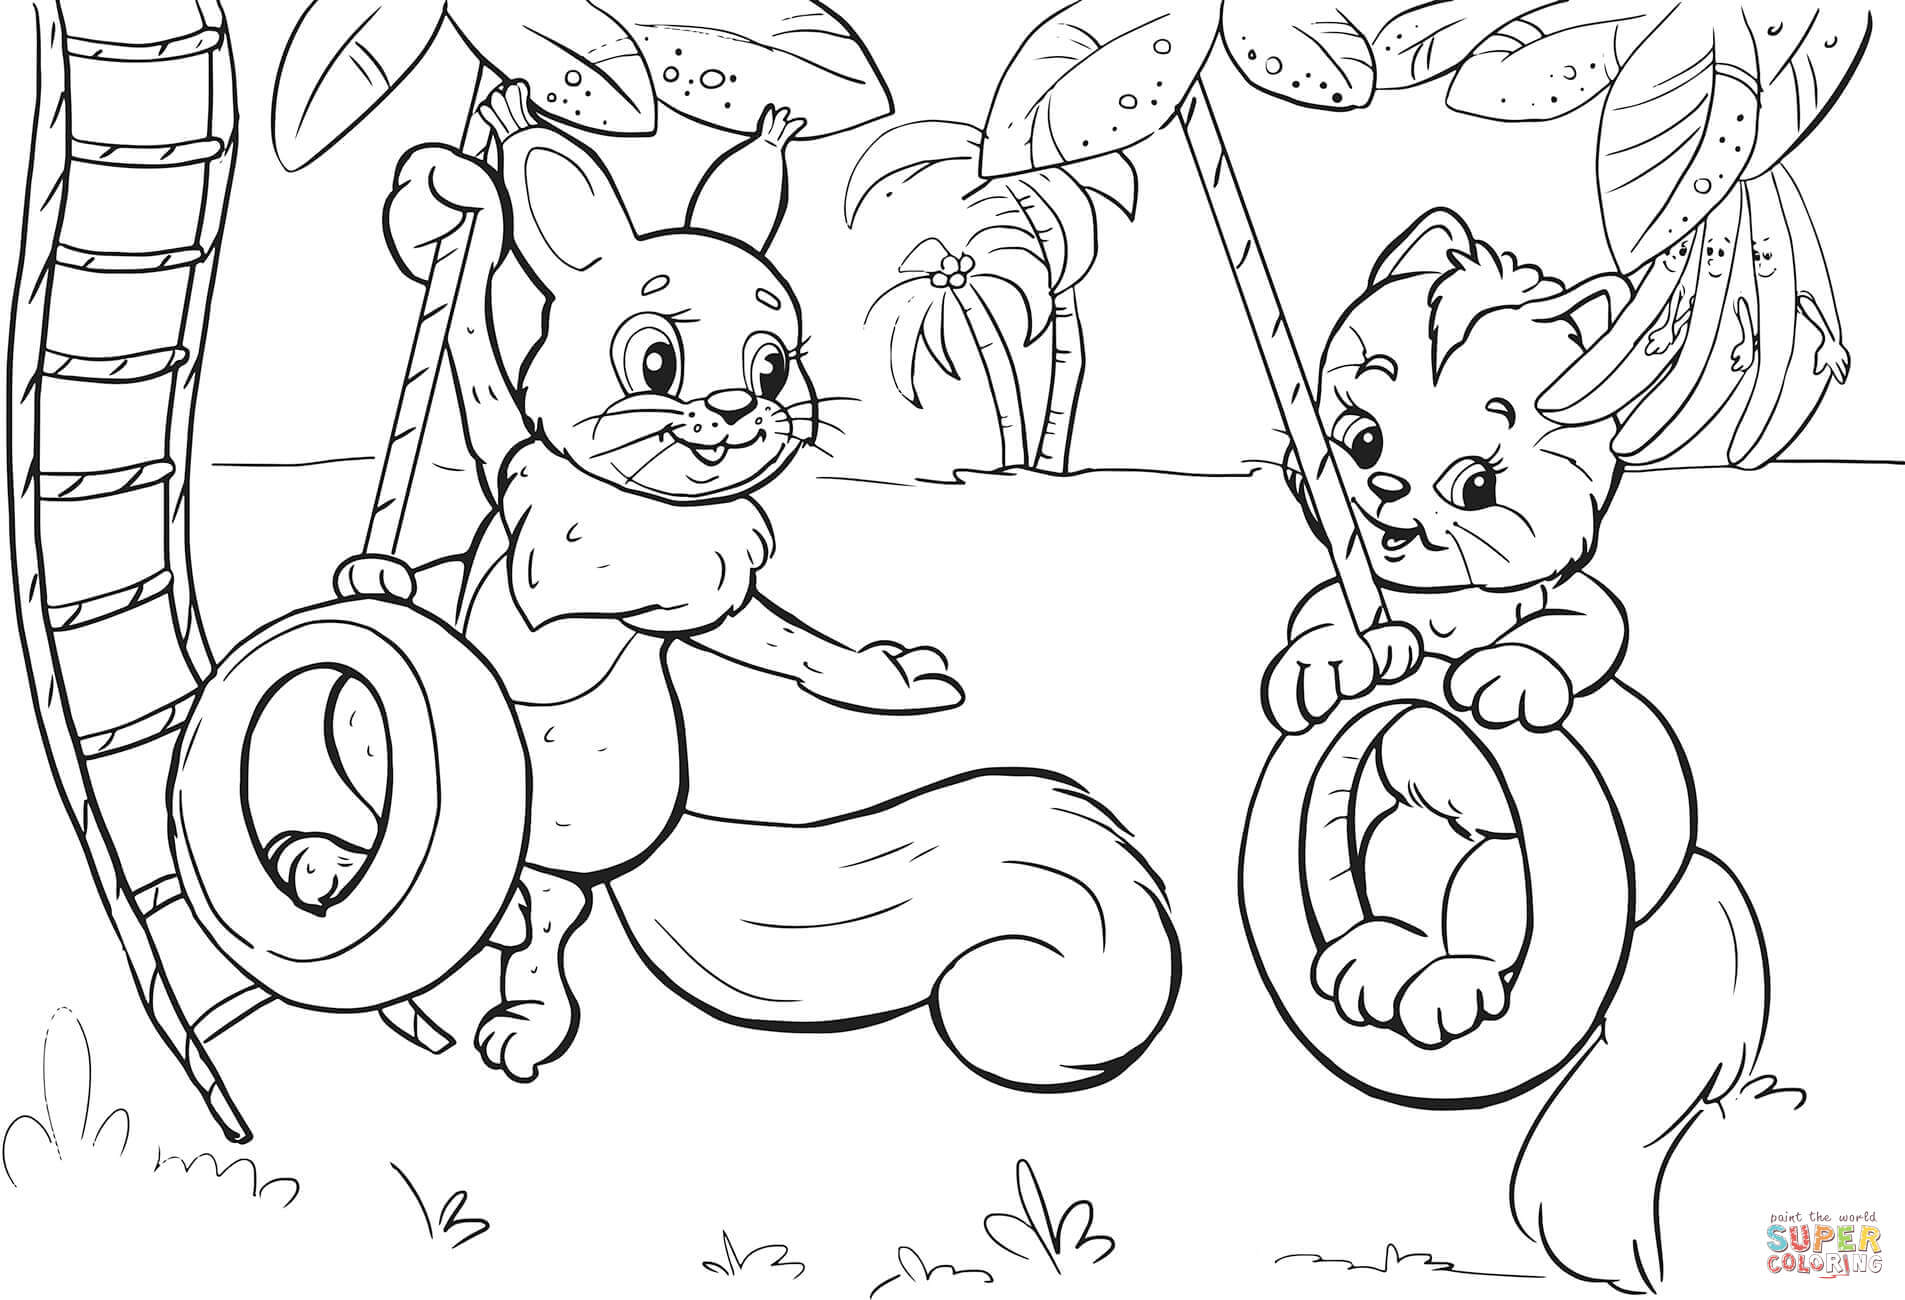 Squirrel And Cat Swinging On Tire Swing Coloring Page